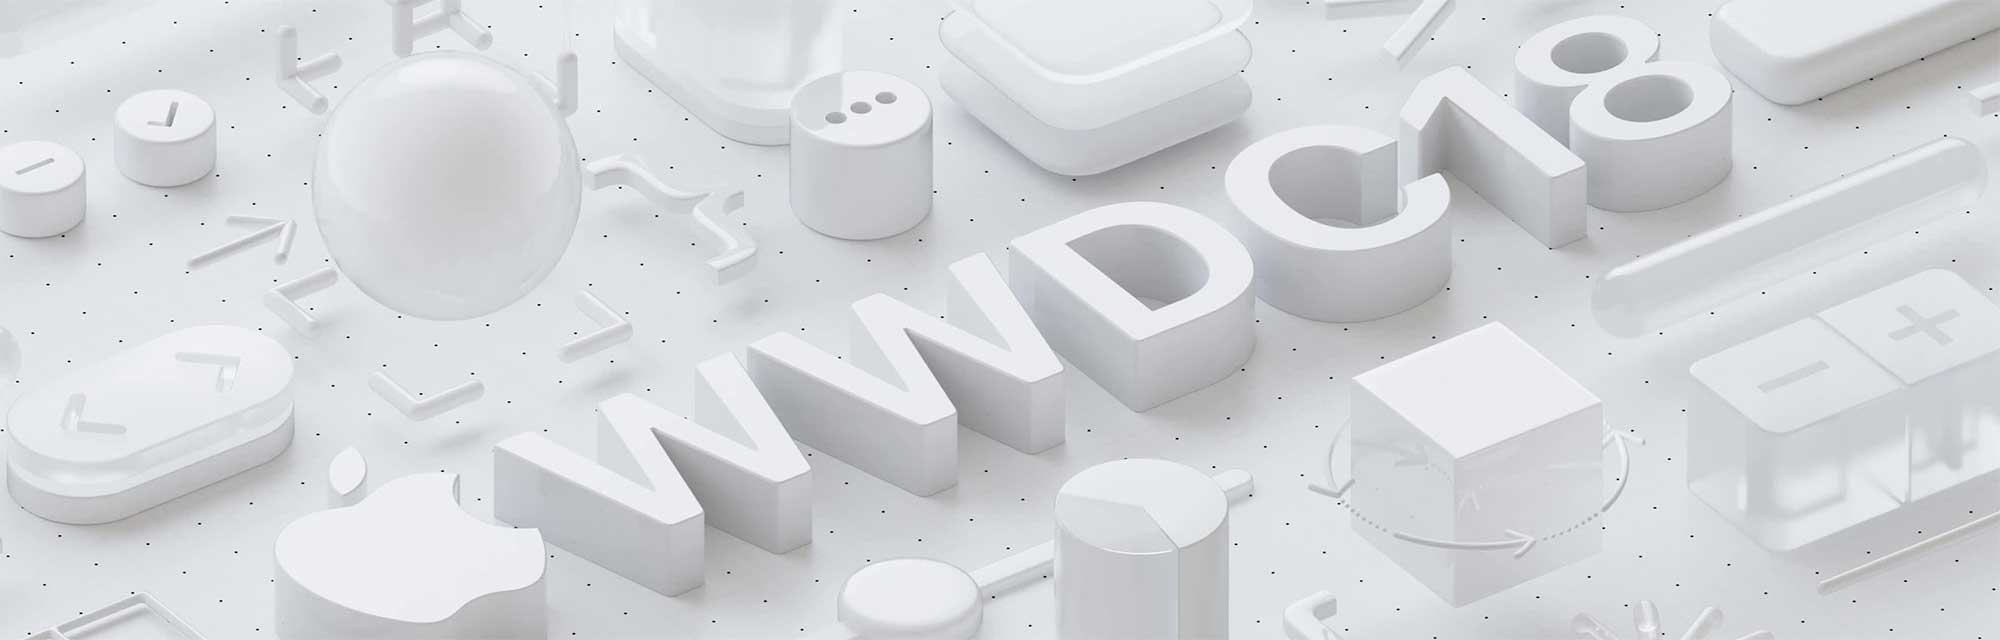 My WWDC 2018 Wish List